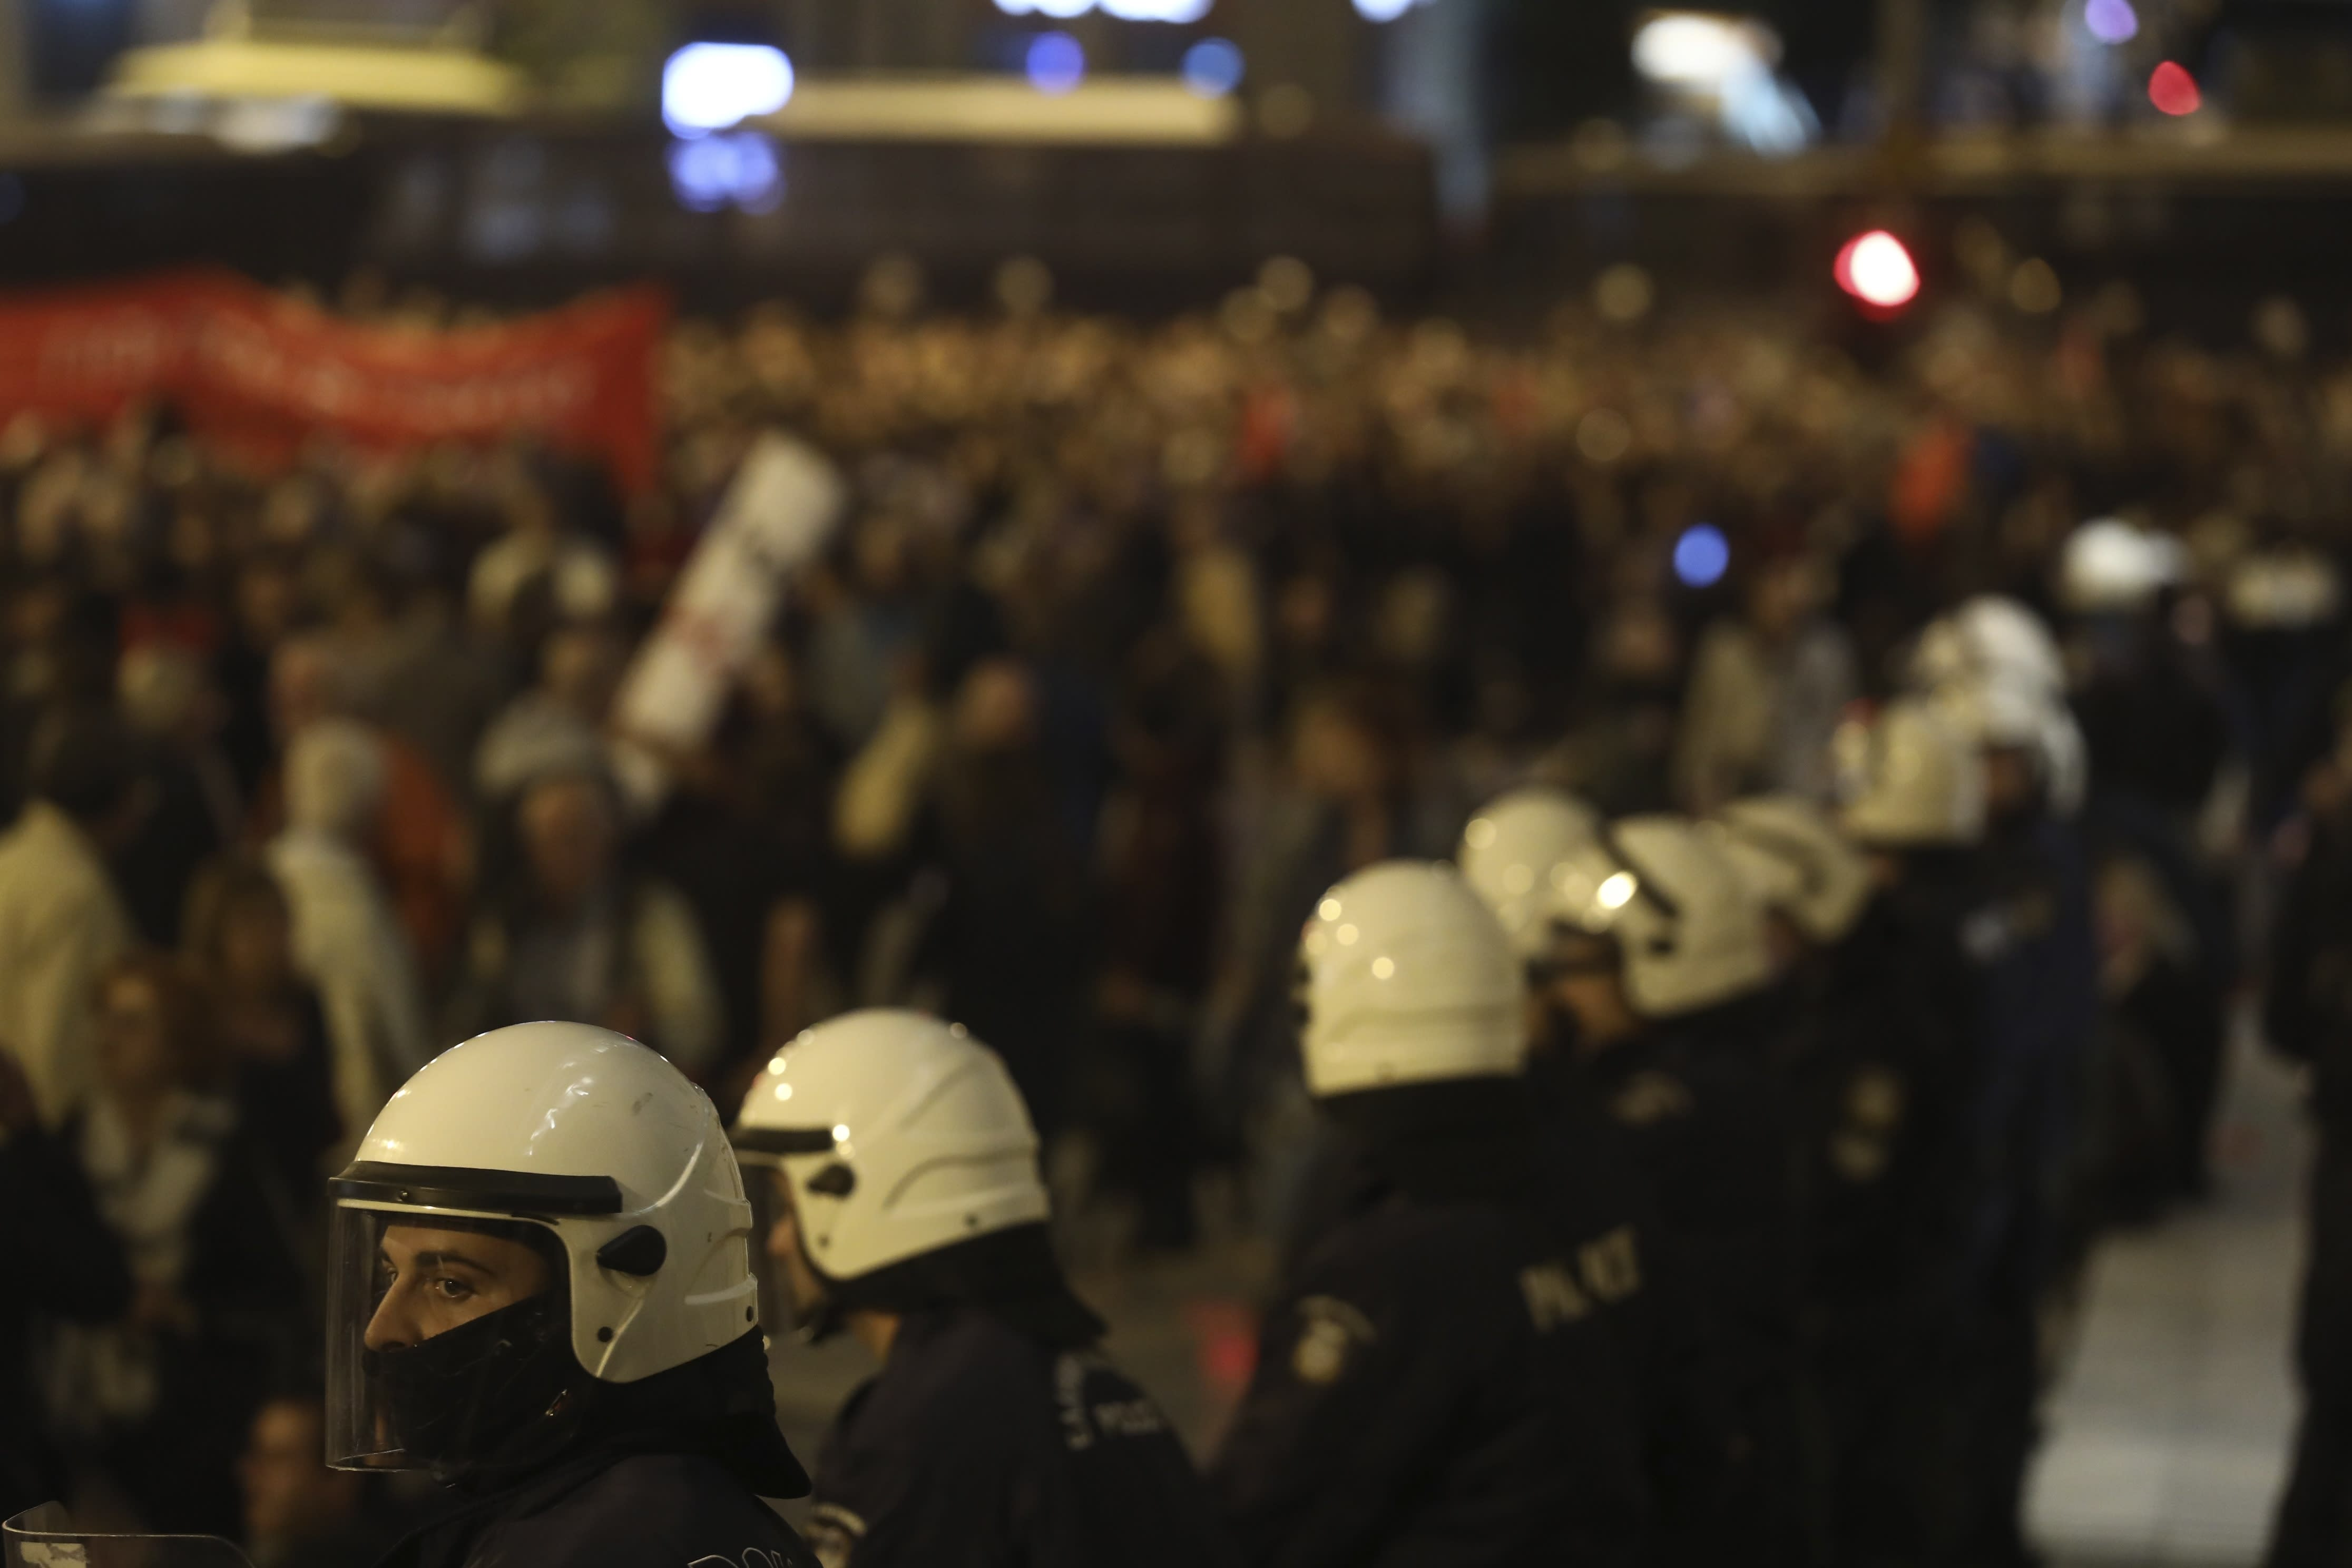 Riot police guard at Syntagma square during a rally in Athens, Sunday, Nov. 17, 2019. Several thousands people march to the U.S. Embassy in Athens under tight police security to commemorate a 1973 student uprising that was crushed by Greece's military junta, that ruled the country from 1967-74. (AP Photo/Yorgos Karahalis)